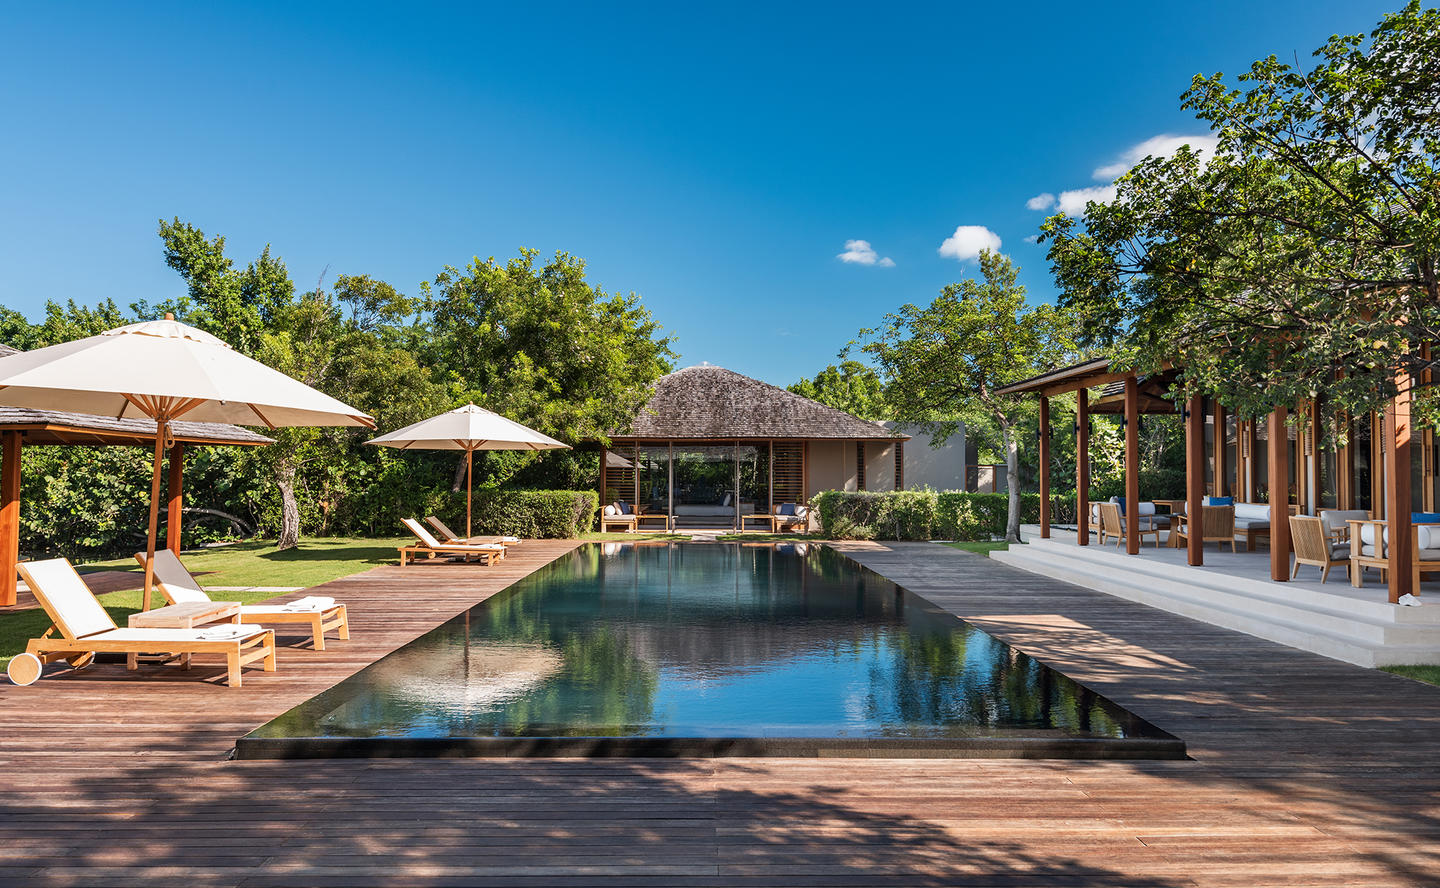 Swimming Pool & Terrace, Four-Bedroom Tranquility Villa - Amanyara, Turks & Caicos